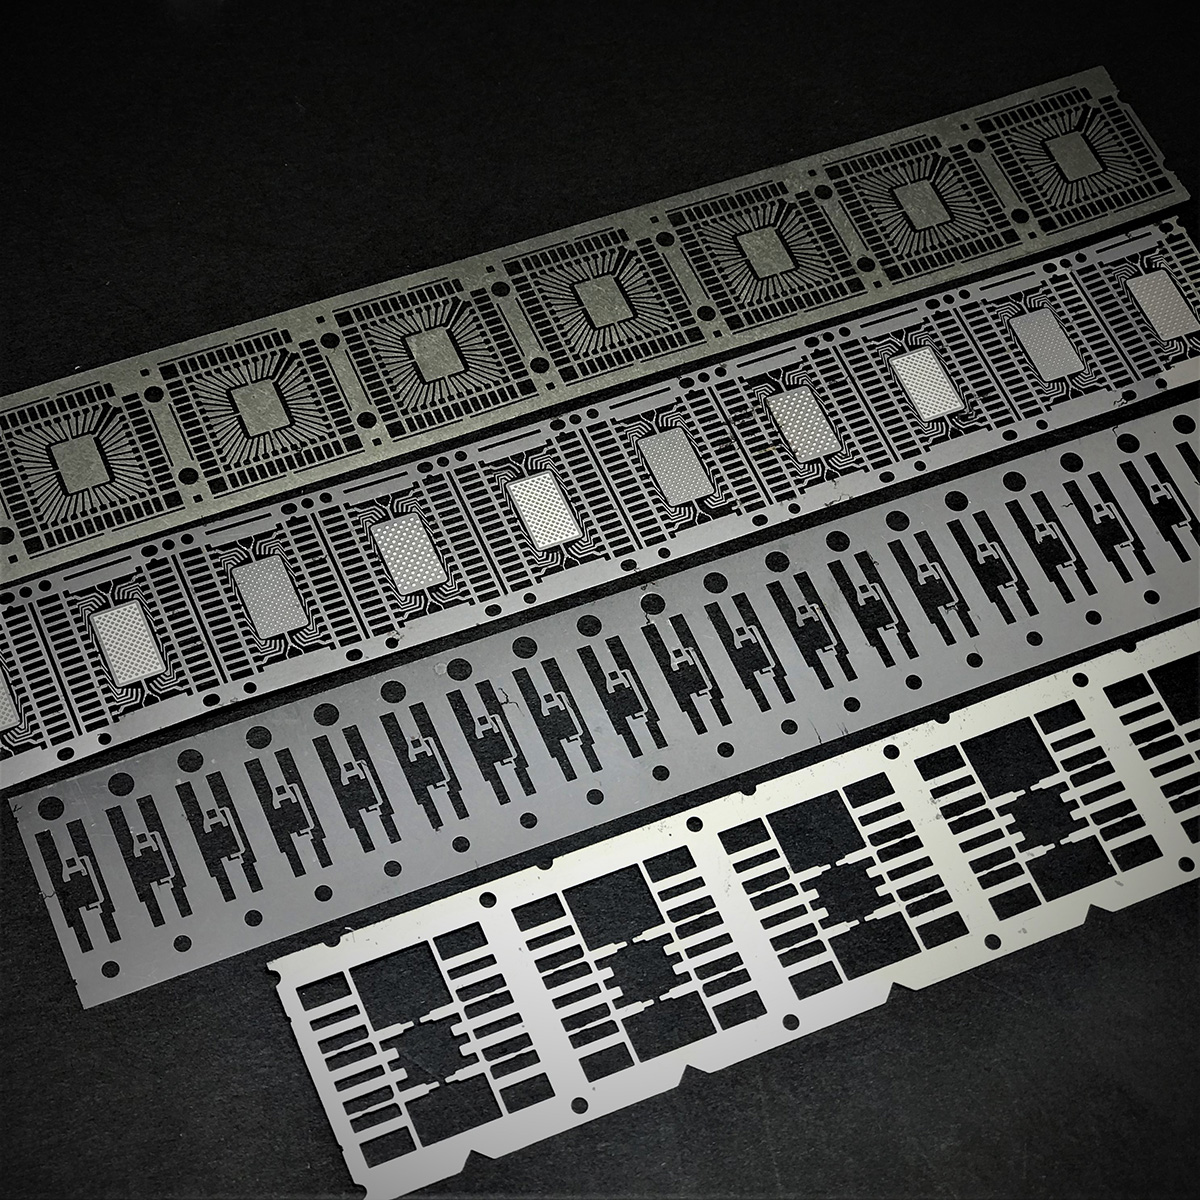 Etched Lead frames